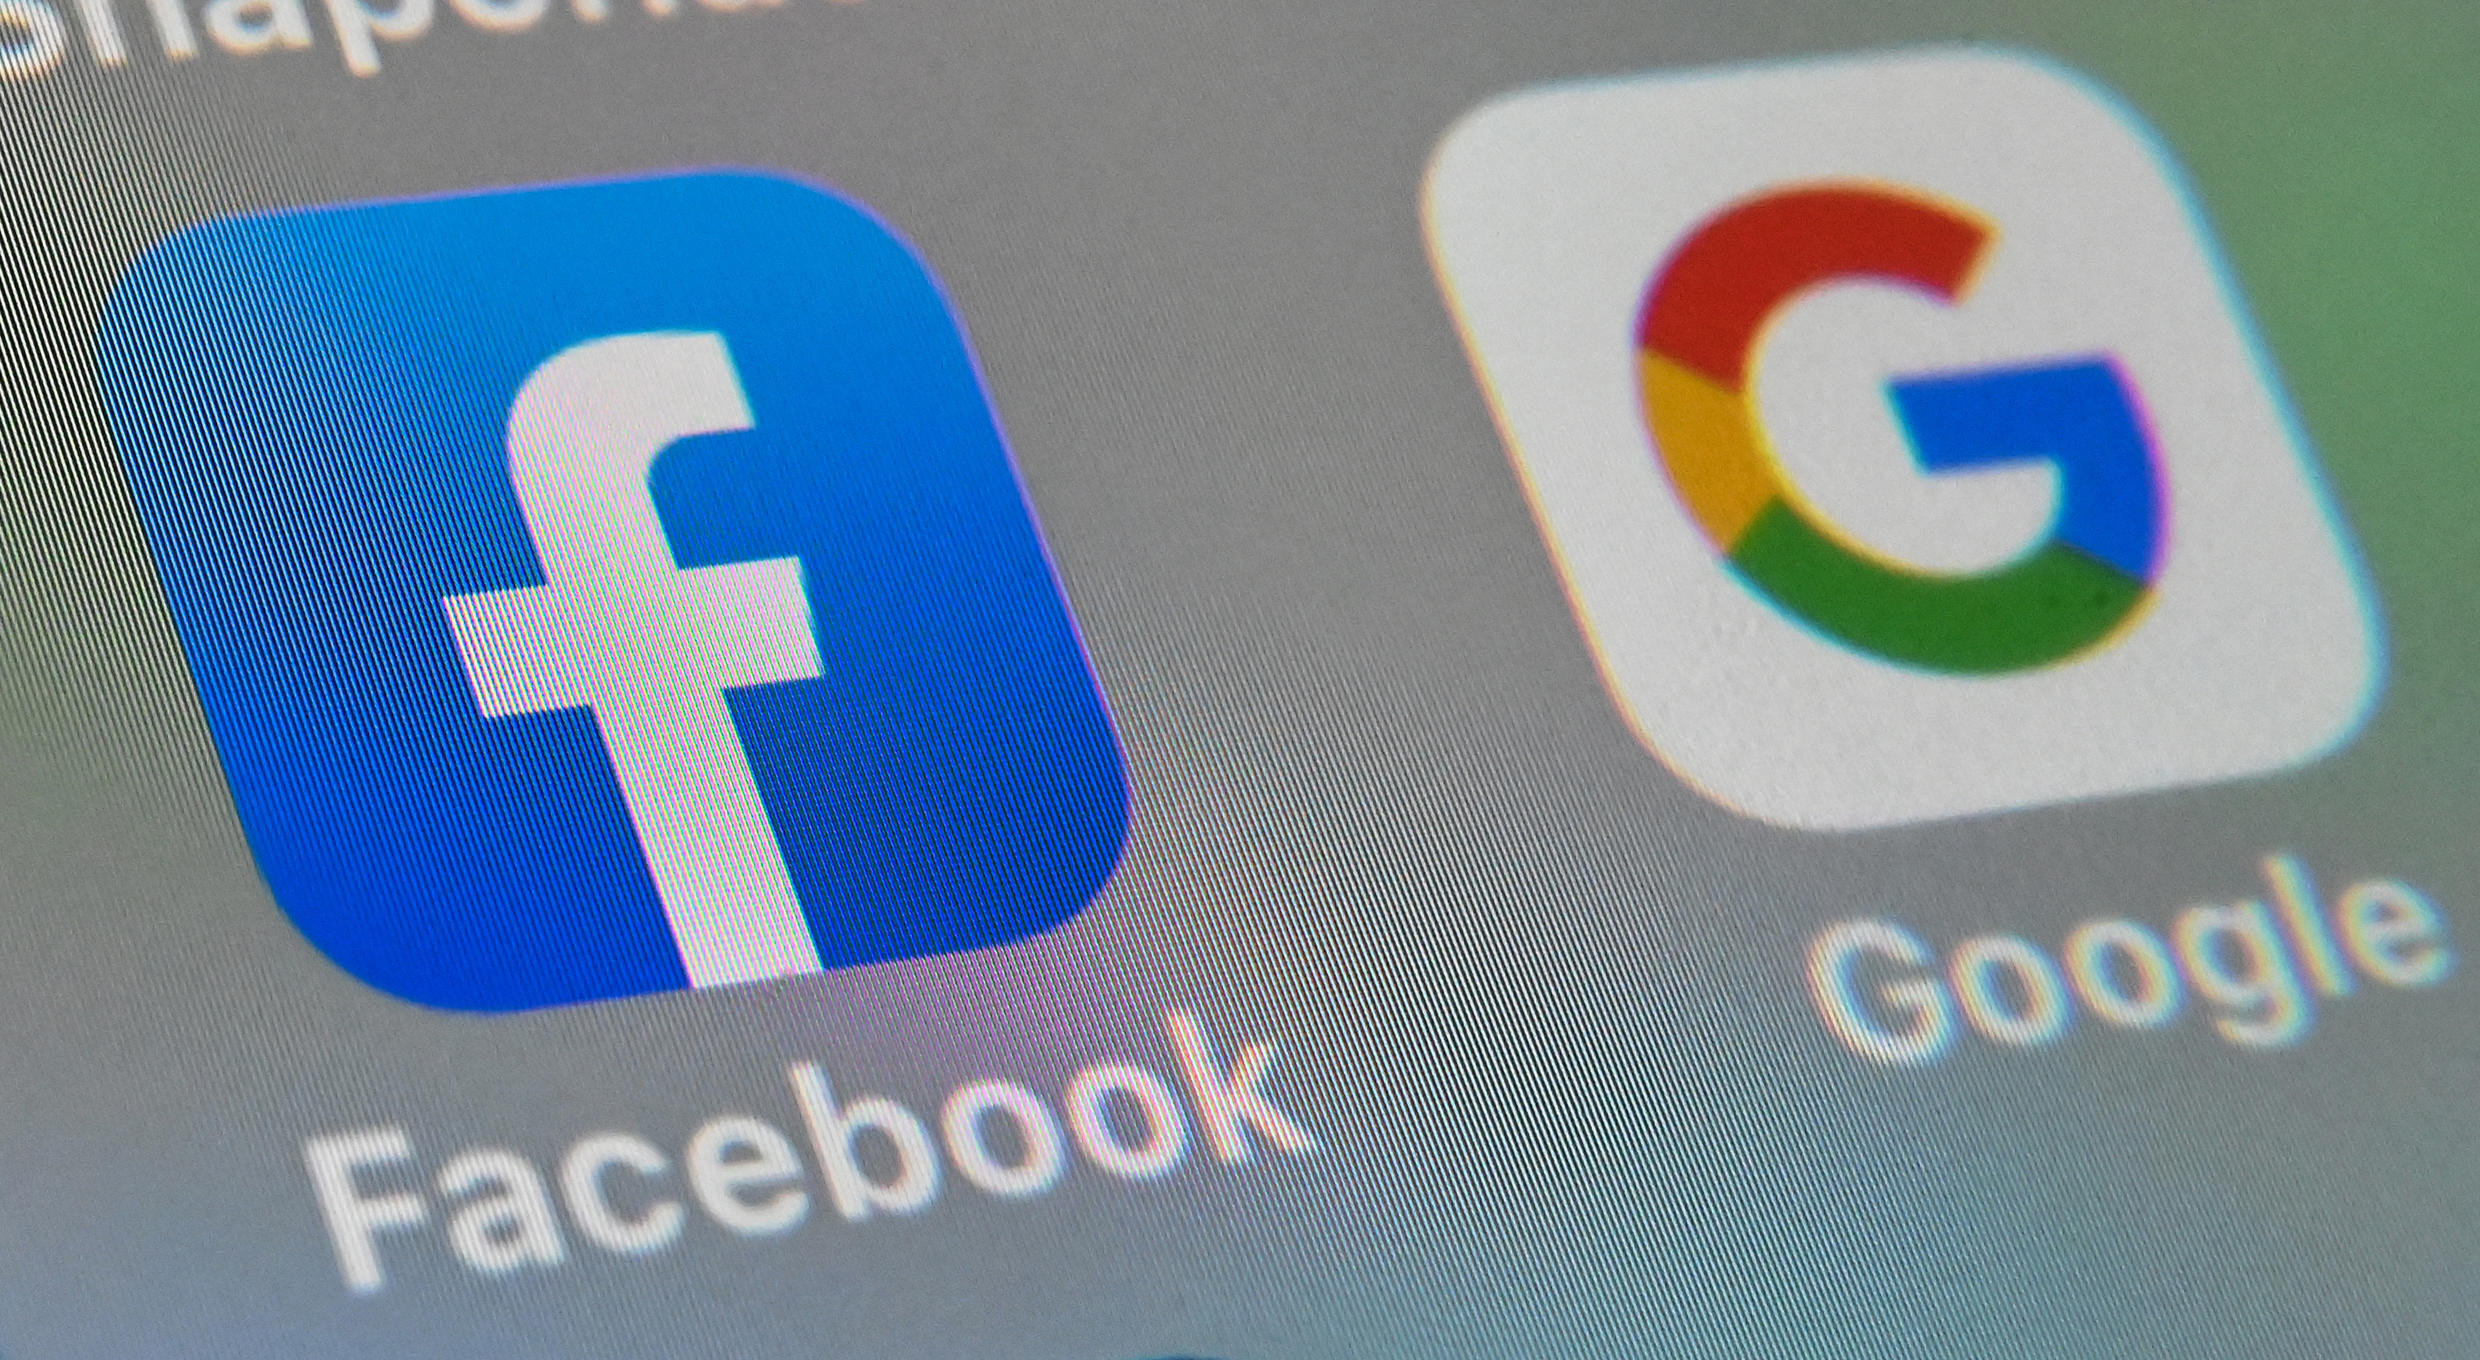 Tech giants like Facebook and Google could be forced to pay news outlets for their content, under a new law being mooted in Australia